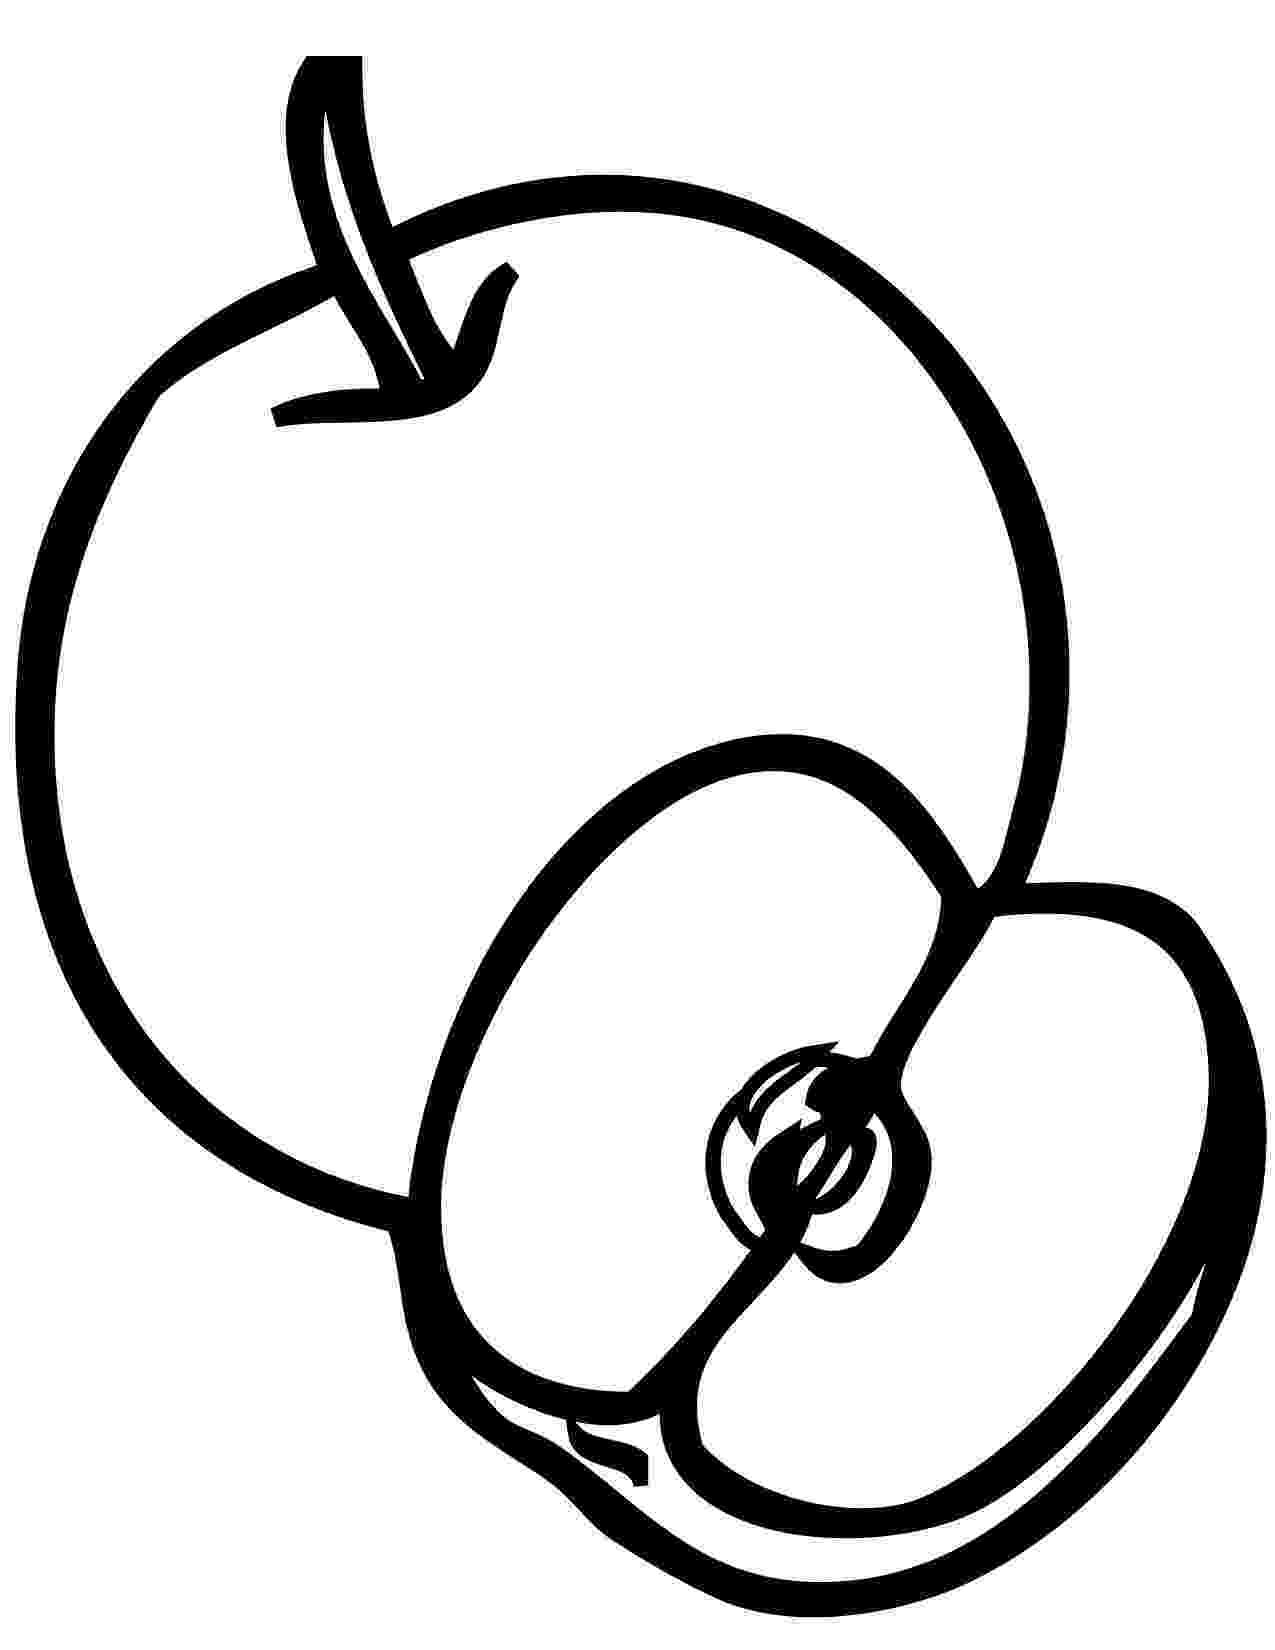 coloring page of an apple apple coloring pages the sun flower pages coloring page apple an of